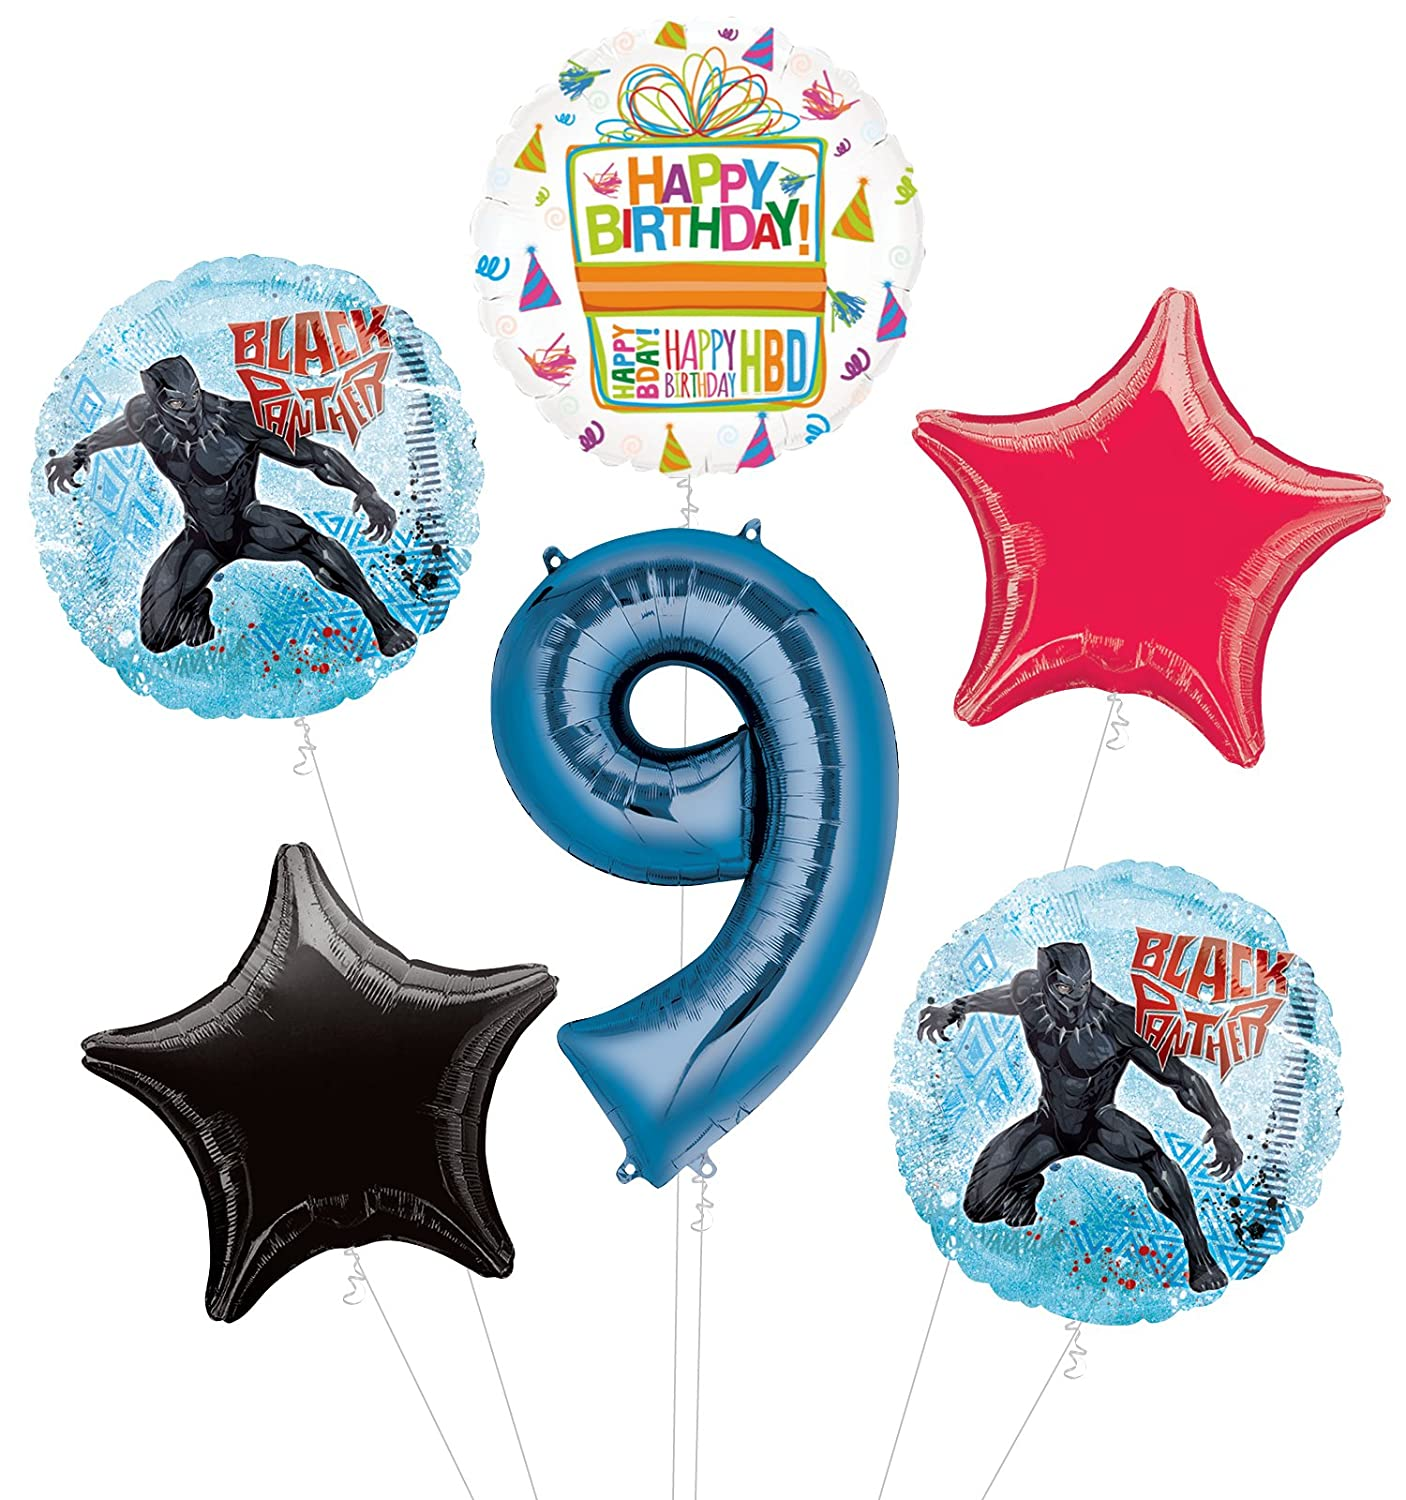 Happy 9th Birthday Double Sided 2 Designs Helium Foil Number 9 Party Celebrate